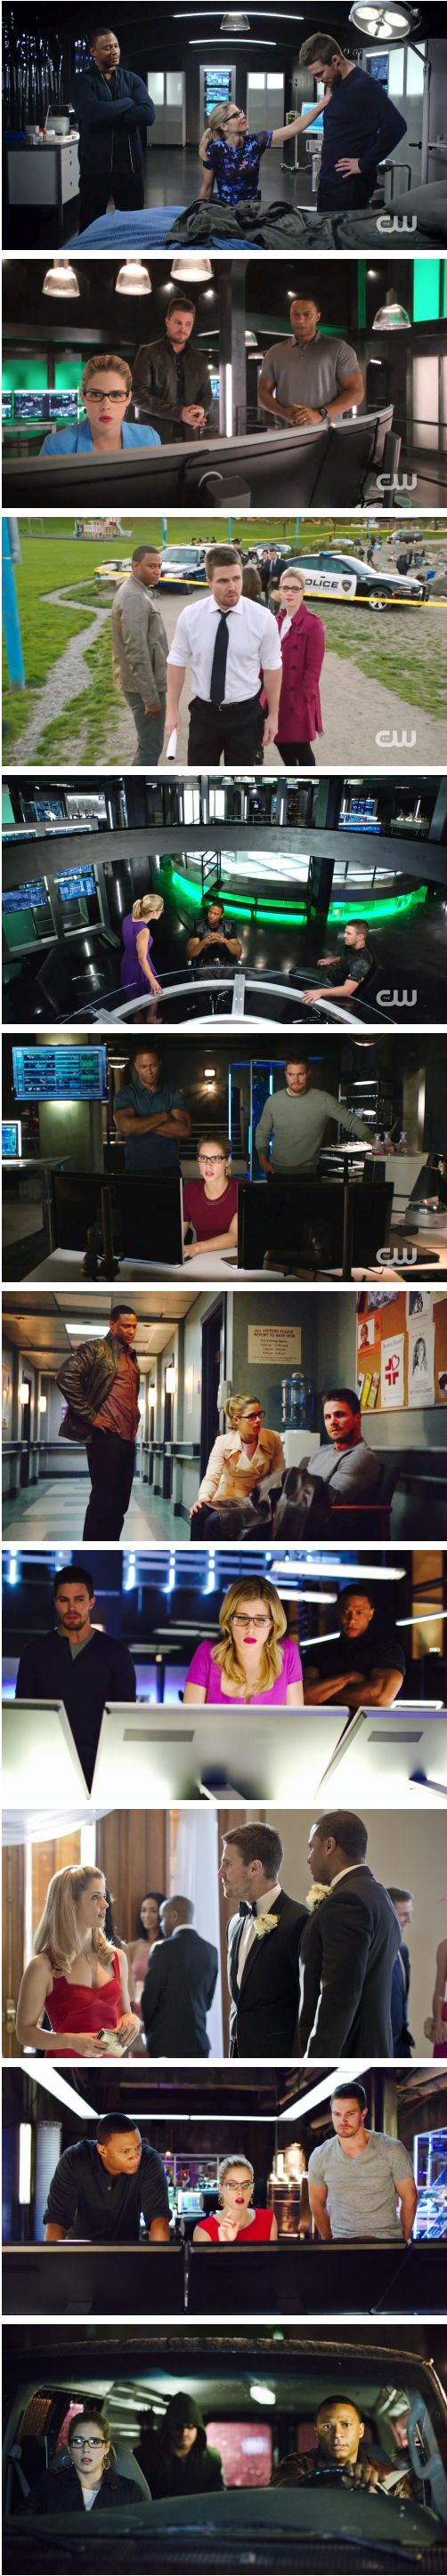 "Original #TeamArrow #OGs | ""… let's not forget our roots. Let's not, in the interest of trying new things, forget what people loved about this show in the first place."" — Stephen Amell"